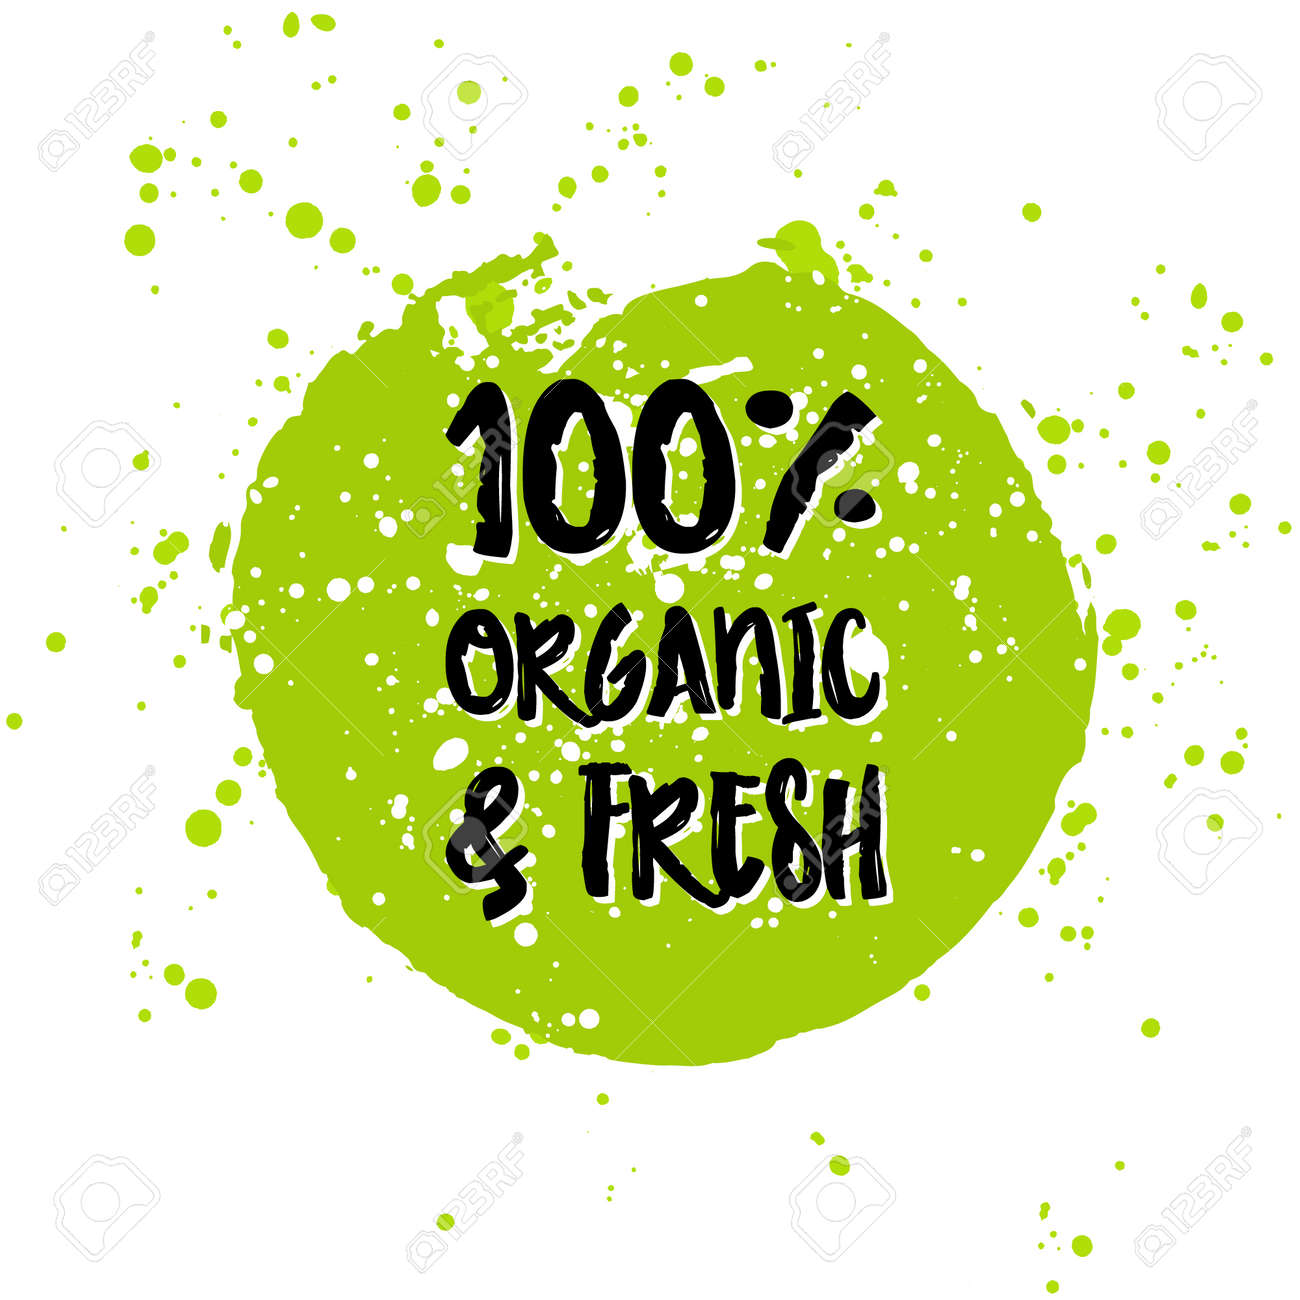 Go green Eco icon and bio sign on watercolor stain. Vector banner 100% natural organic food concept. Farm Fresh logo and Certified Organic Product emblem. Natural Vegetarian food and Vegan food label - 55017987